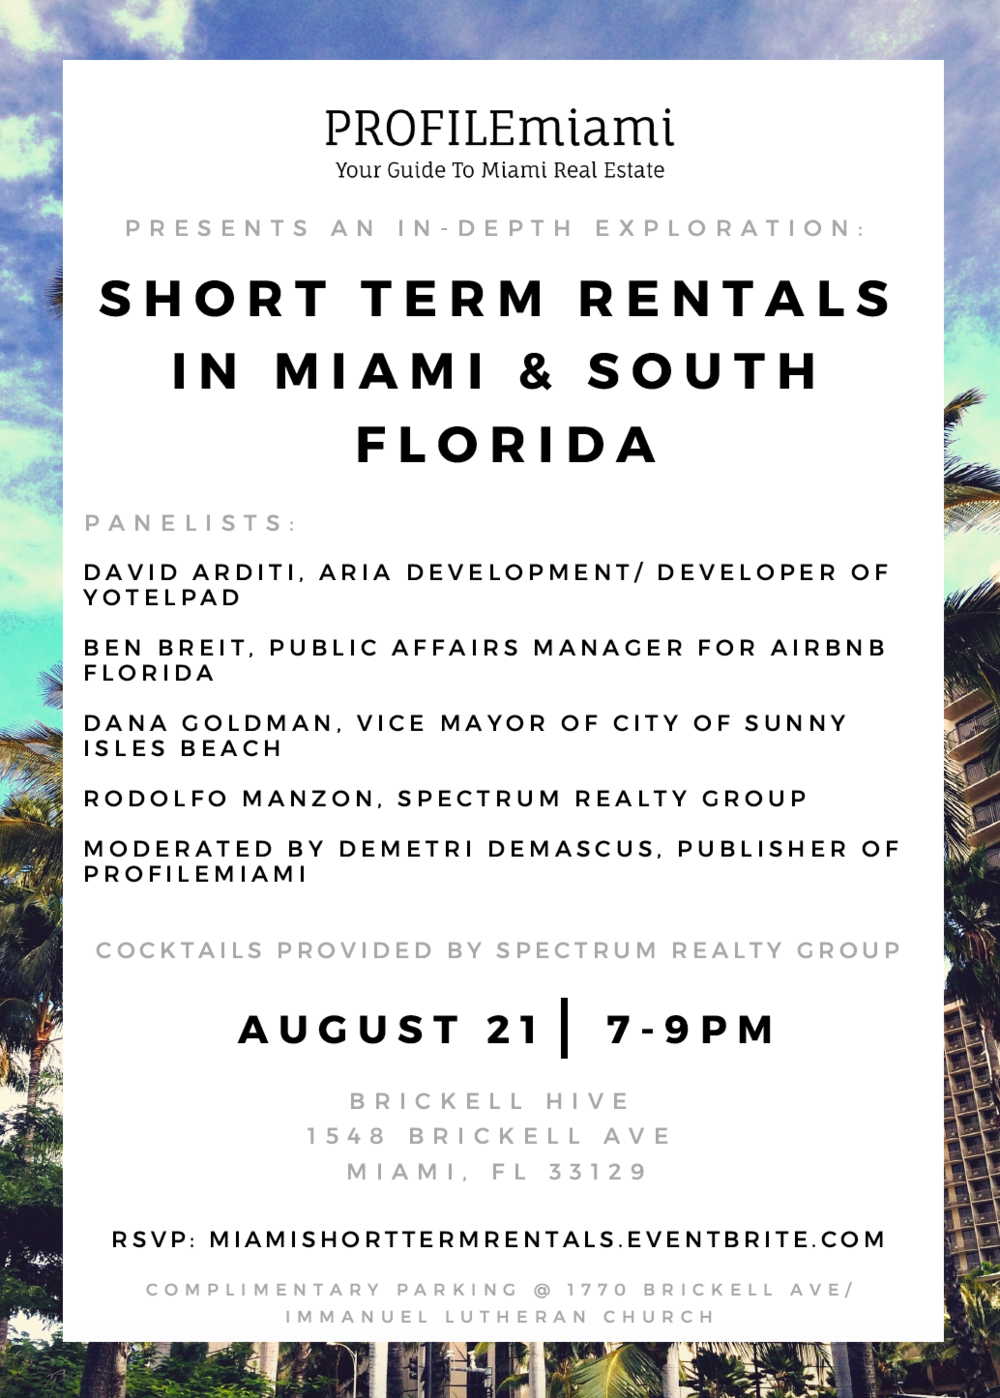 PROFILEmiami Presents An In-Depth Exploration Into Short Term Rentals In Miami & South Florida